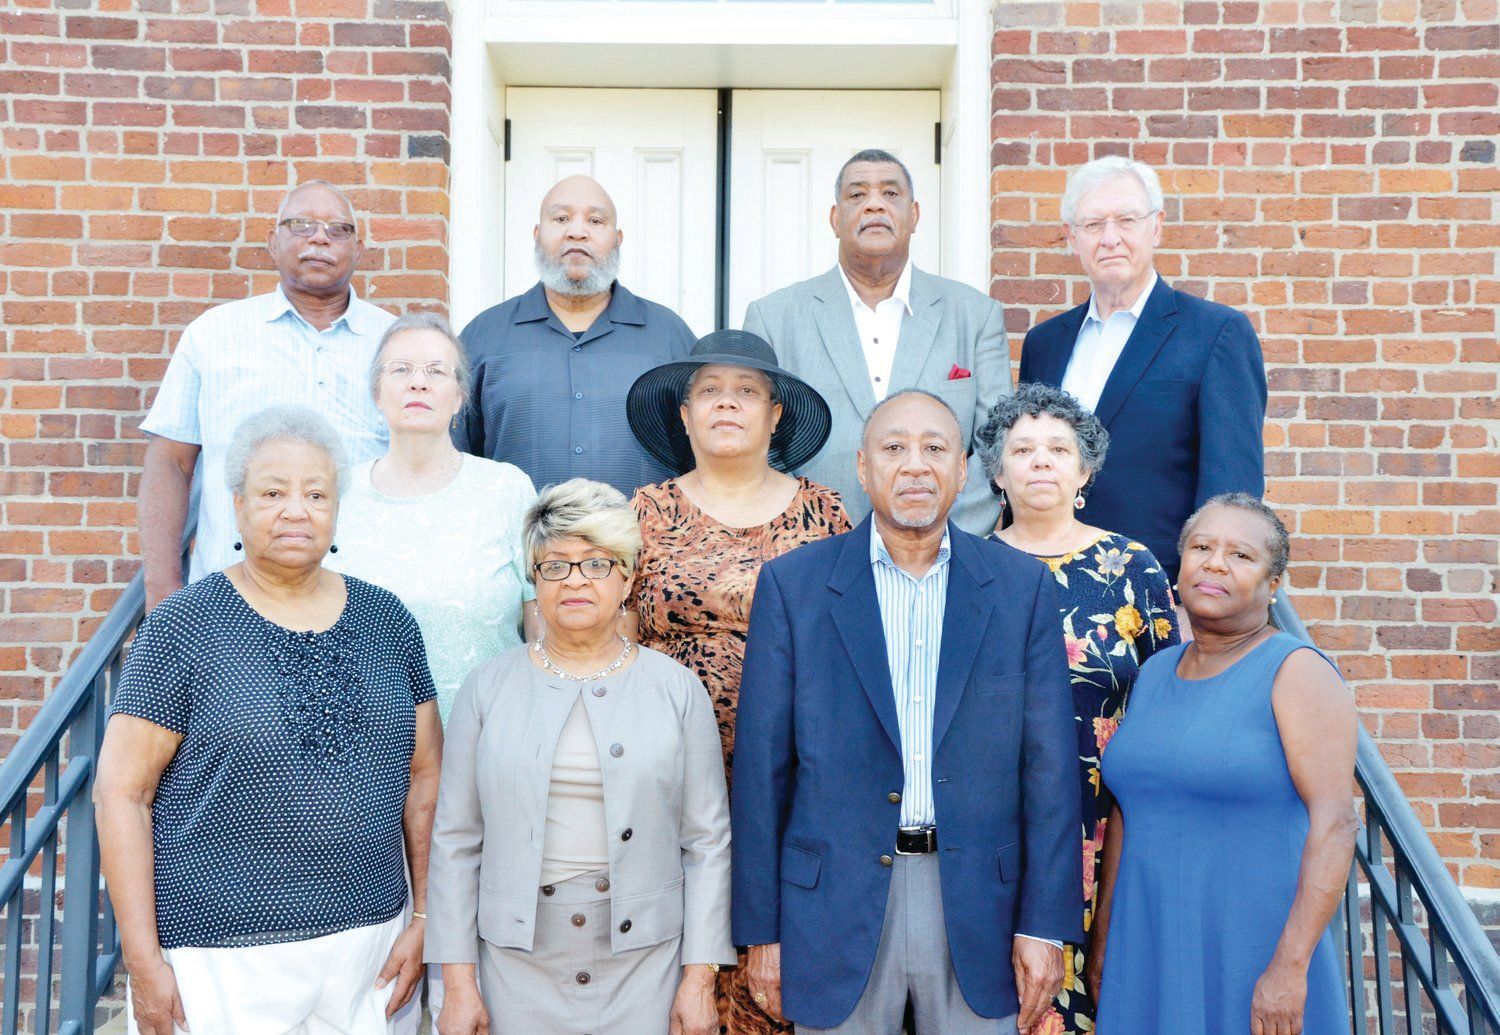 In this file photo, members of Chatham County's two NAACP chapters involved in an effort to memorialize the six victims of racial terror lynching in Chatham stand on the steps of the PIttsboro courthouse. This same group was involved in the creation of the Community Remembrance Coalition. Front row, from left: Armentha Davis, Mary Harris, Larry Brooks and Mary Nettles. Middle row, from left: Vickie Shea, Cledia Holland and Linda Batley. Back row, from left: Glenn Fox, Wayne Holland, Carl Thompson and Bob Pearson. Pearson, a retired attorney and diplomat who lives in Fearrington Village, was responsible for getting the effort started.